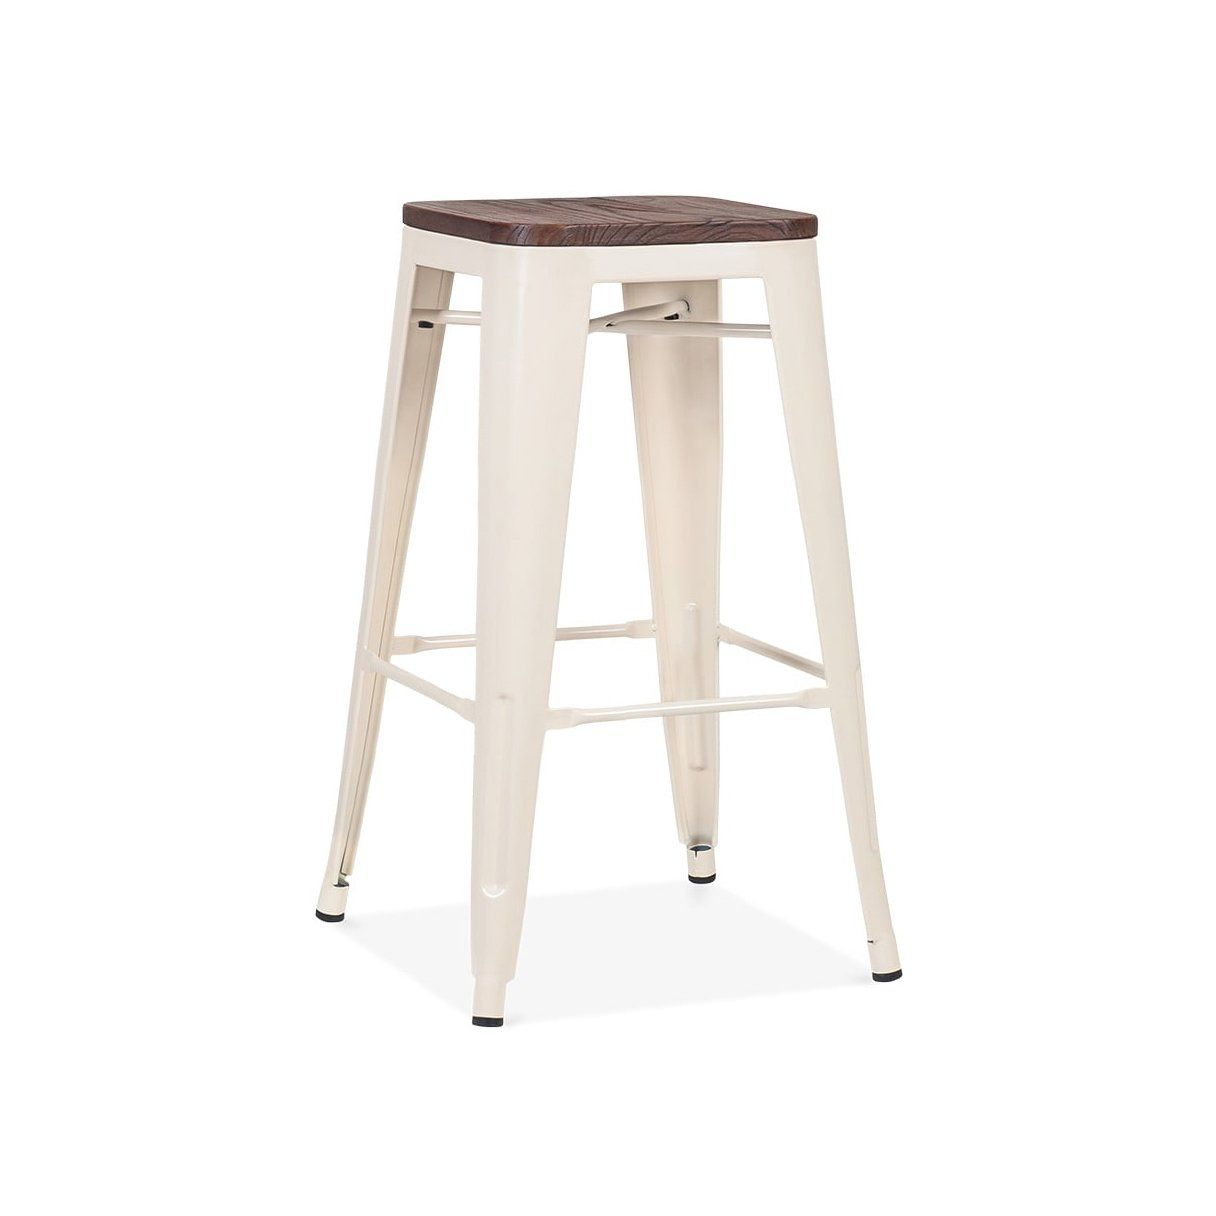 26 inch bar stools. Dreux Glossy Cream Elm Wood Steel Stackable Counter Stool 26 Inch (Set Of 4) Bar Stools